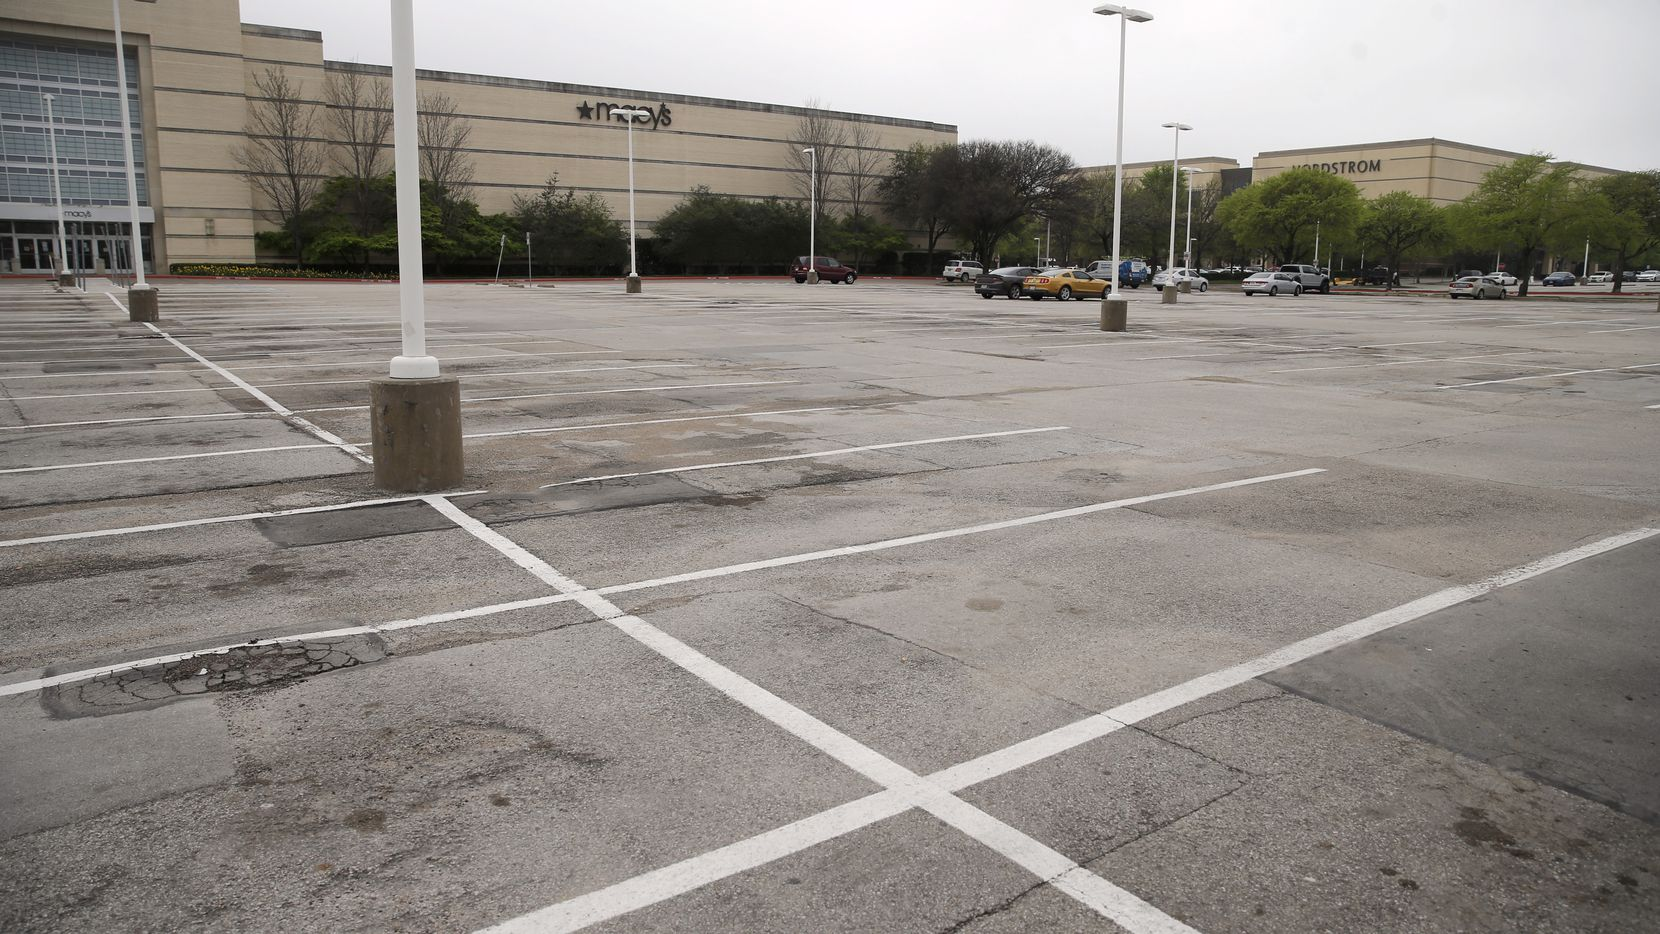 One of the parking lots in front of Macy's at NorthPark Center in Dallas was almost empty on March 17.